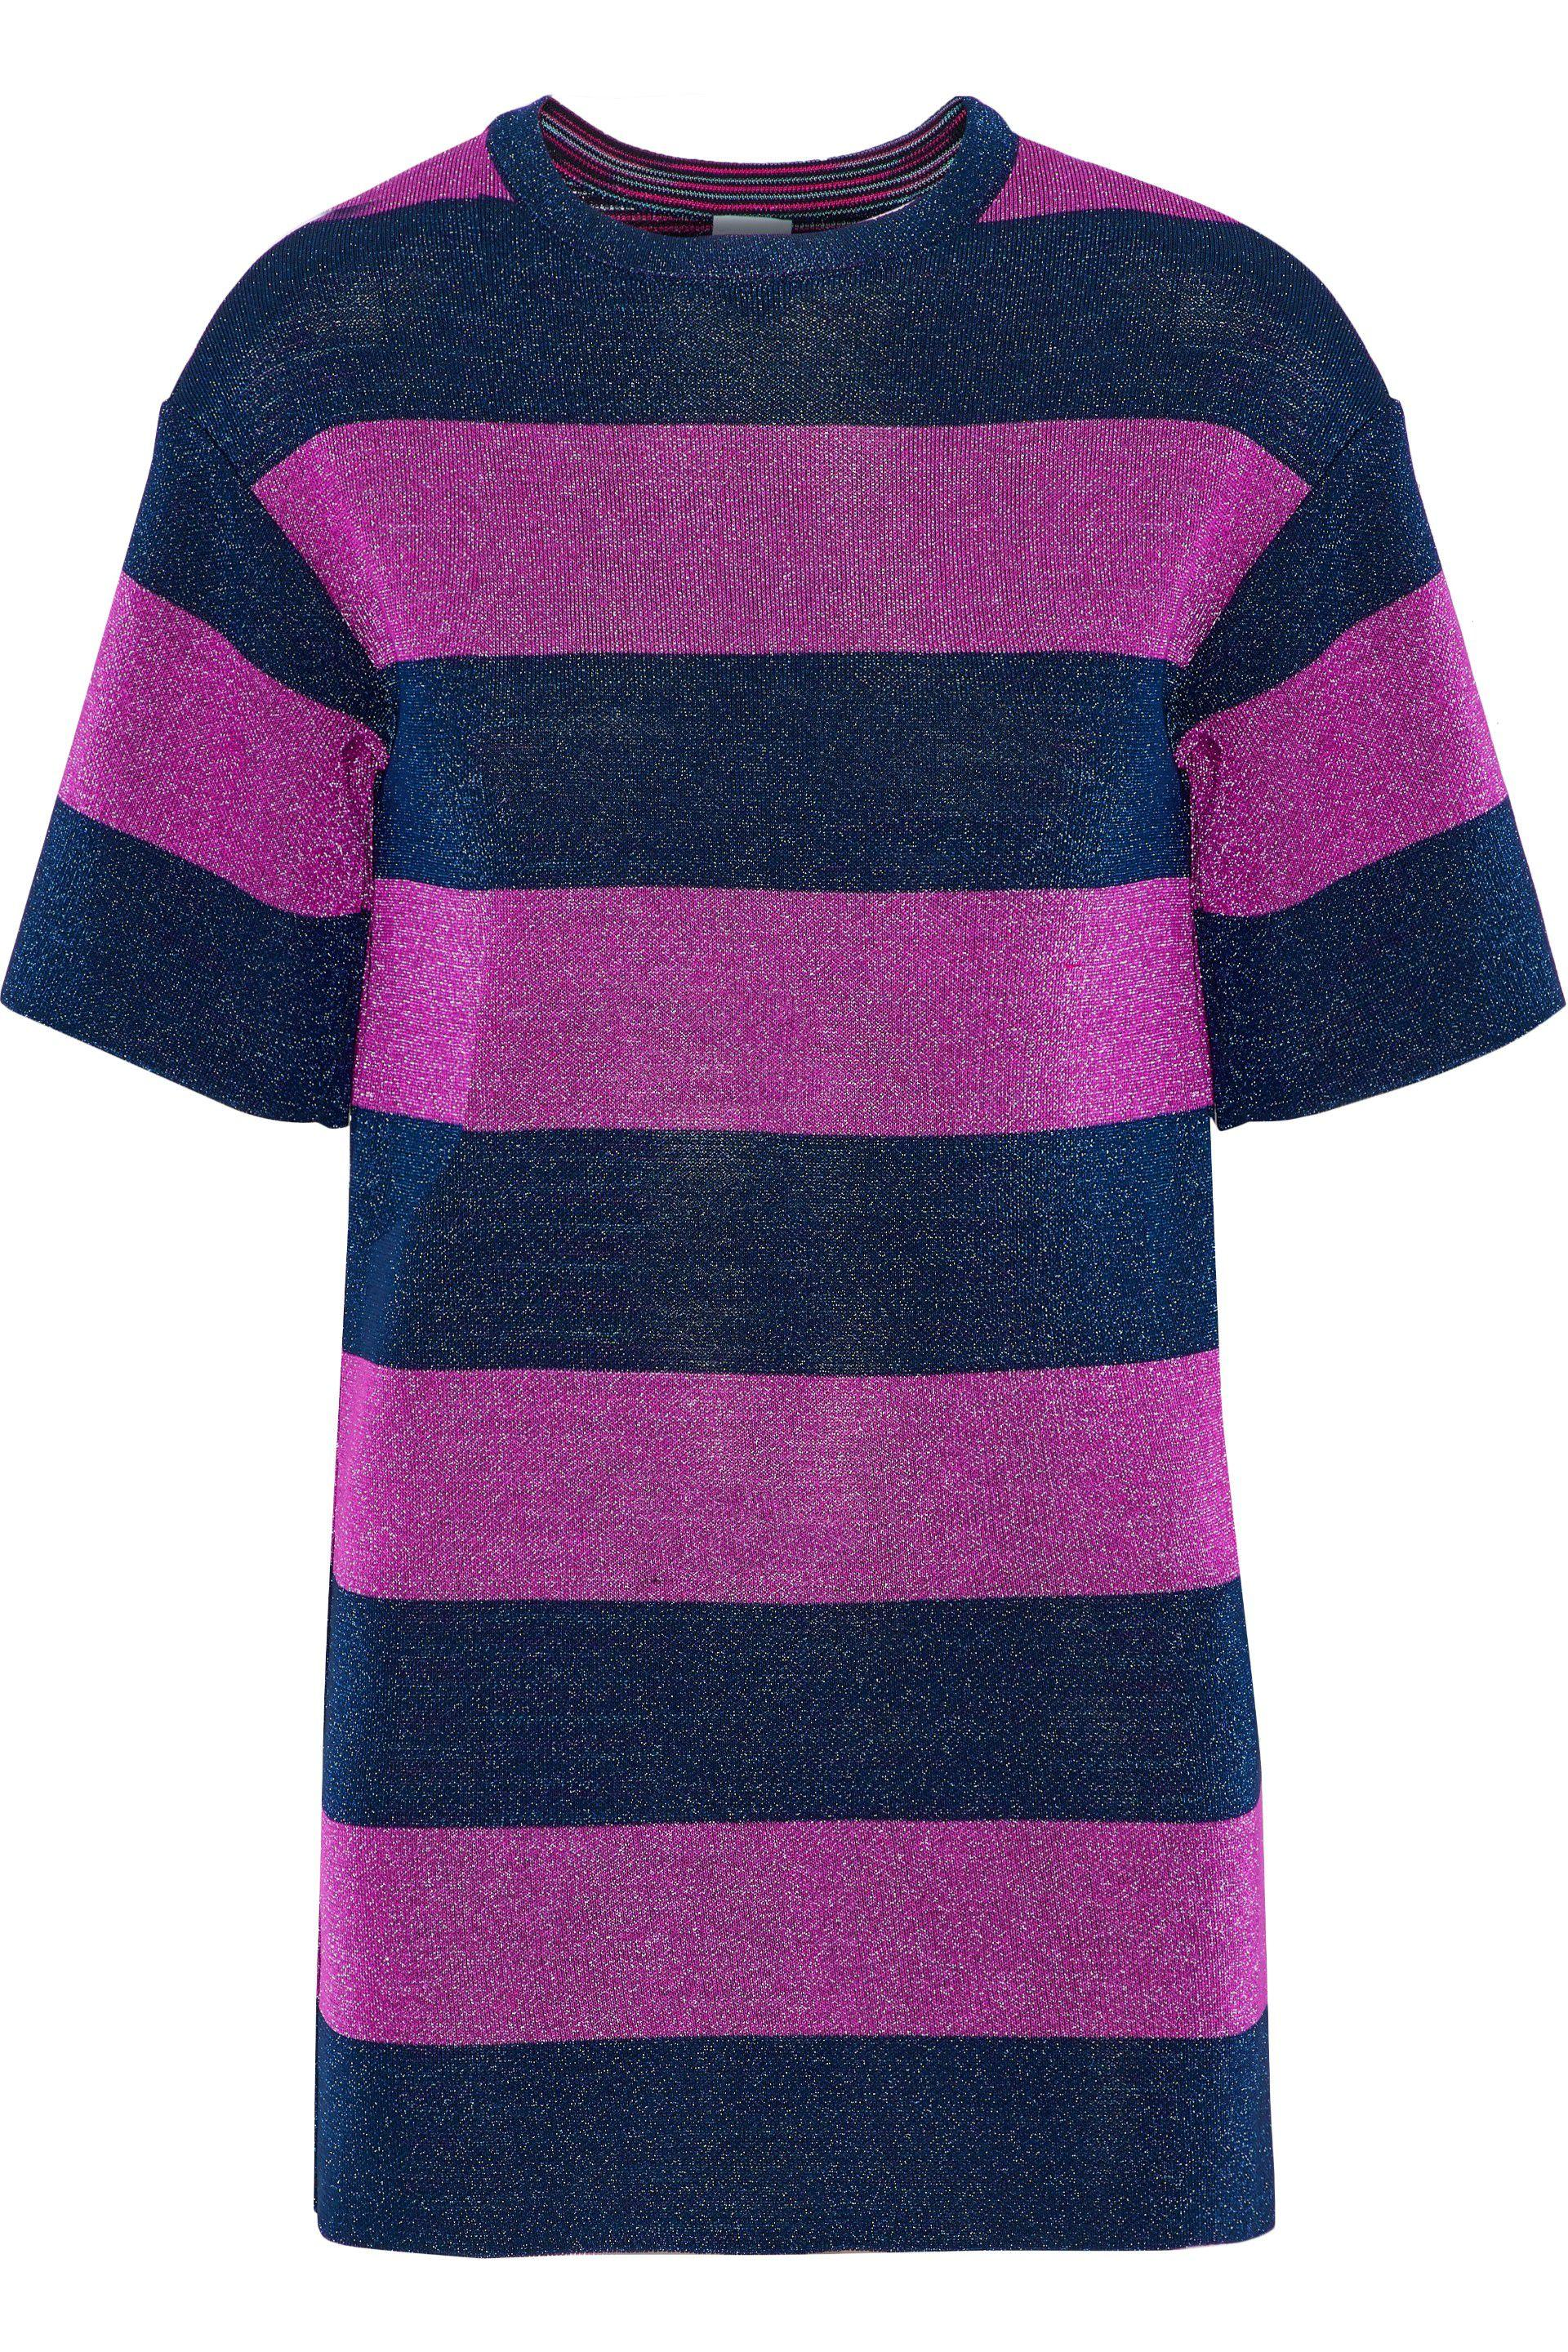 4f1f65fe12bafd M Missoni. Women s Woman Metallic Striped Jacquard-knit Top Magenta